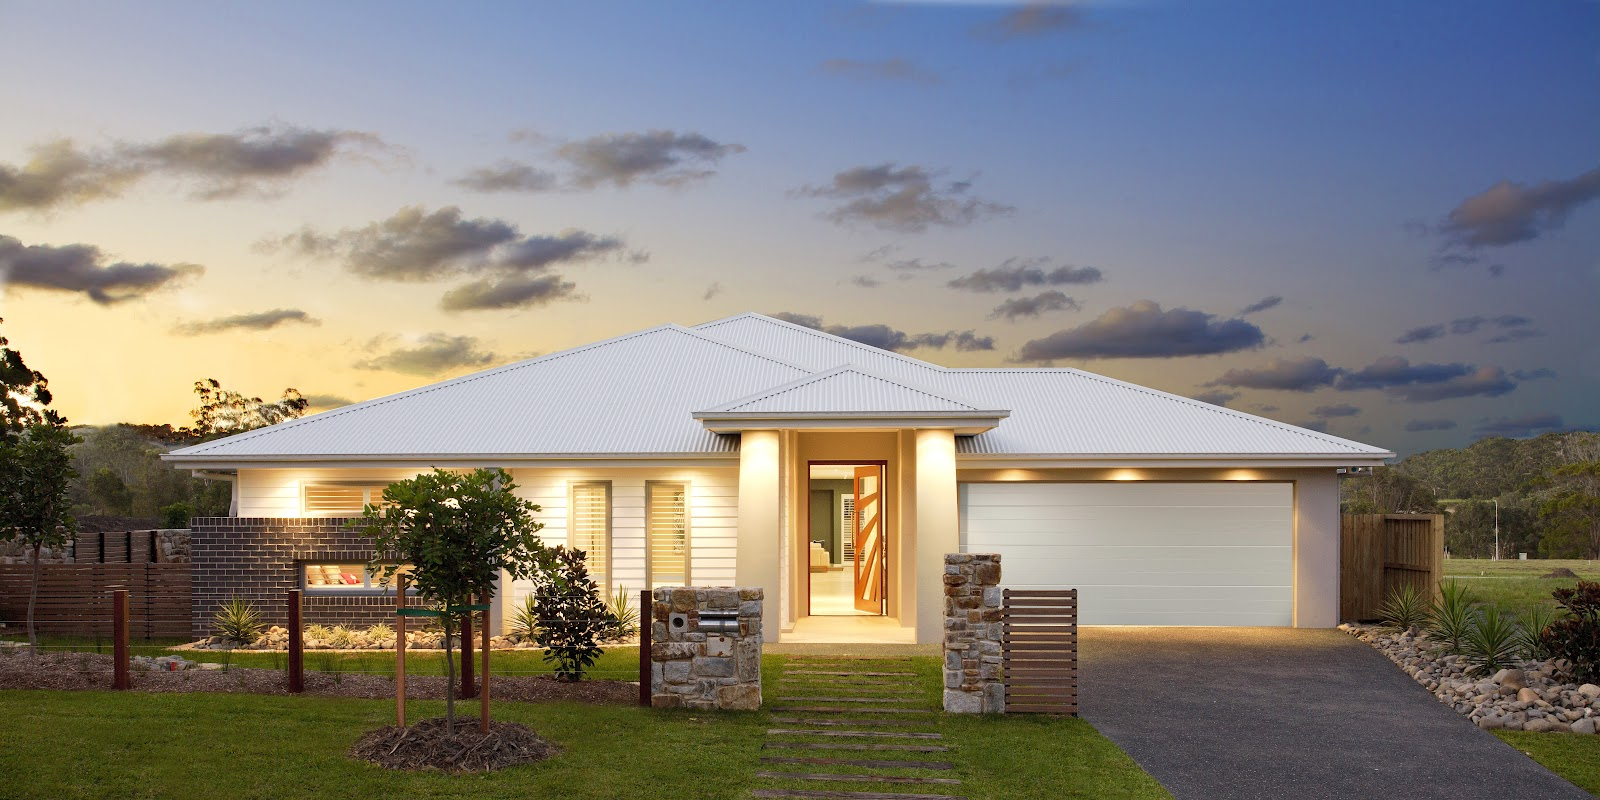 Adenbrook Homes The Quot Penn Quot Opens In North Sapphire Beach